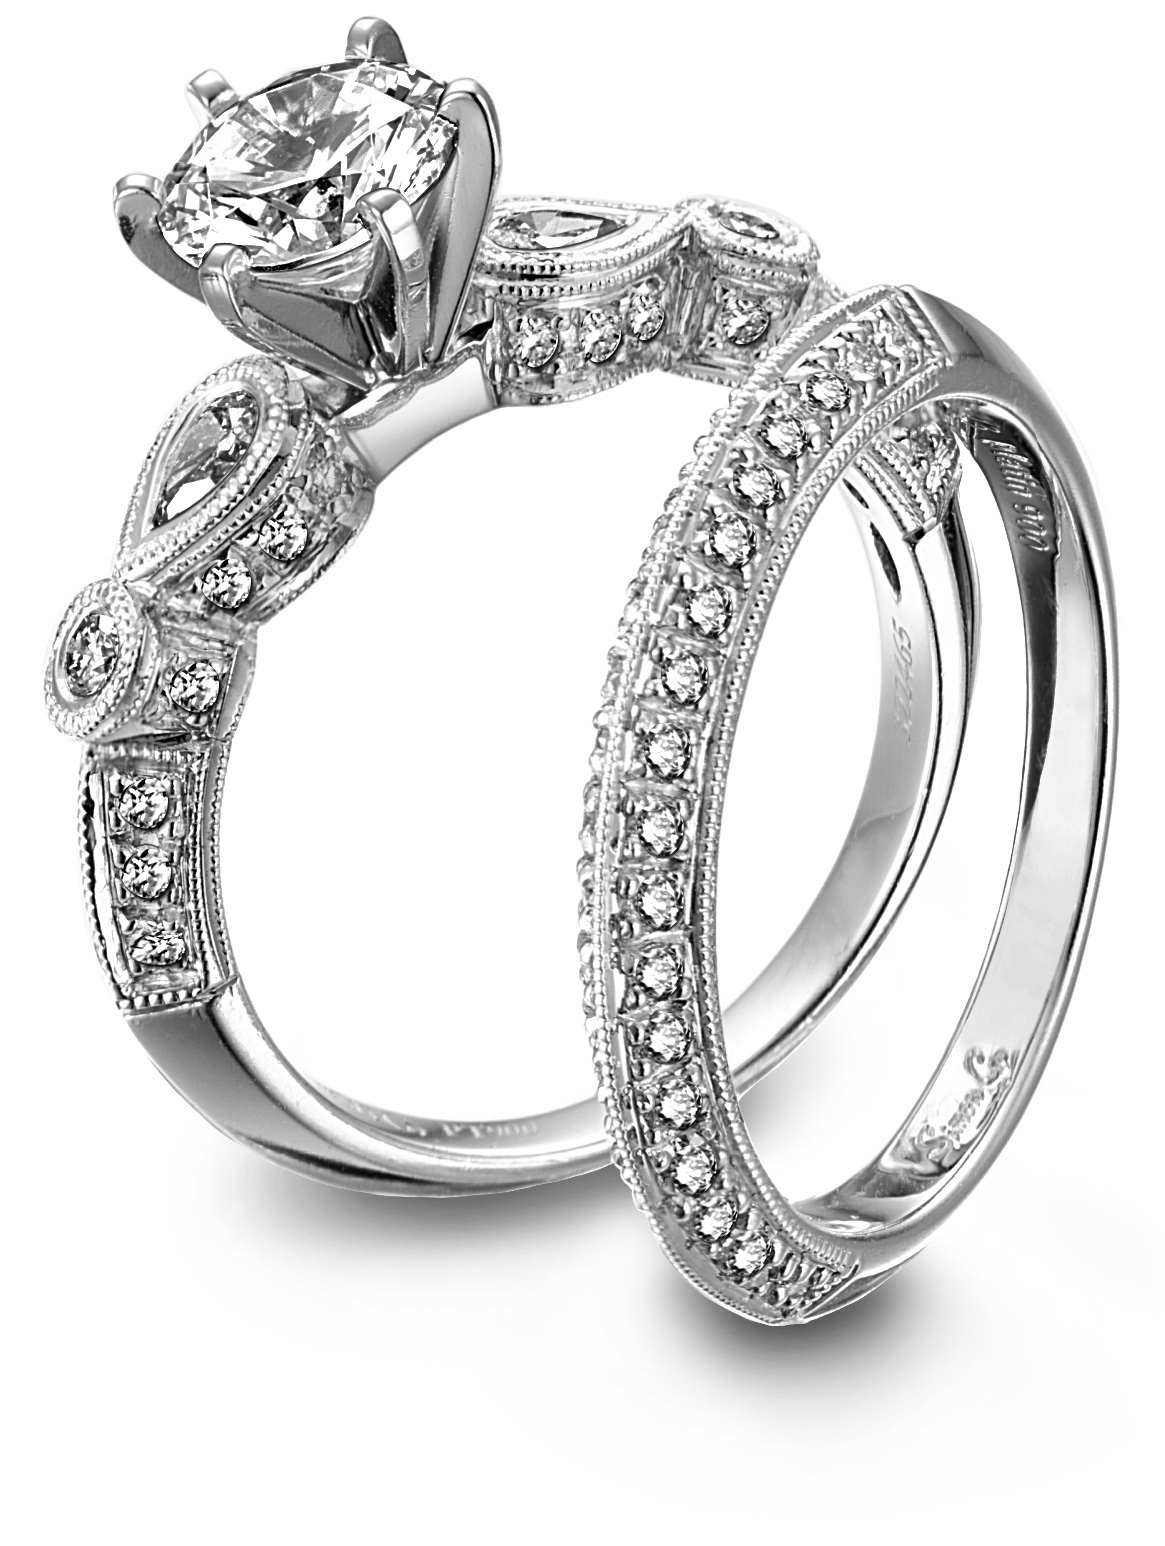 simon g wedding jewelry engagement ring trends wedding band giveaway - Wedding Band Engagement Ring